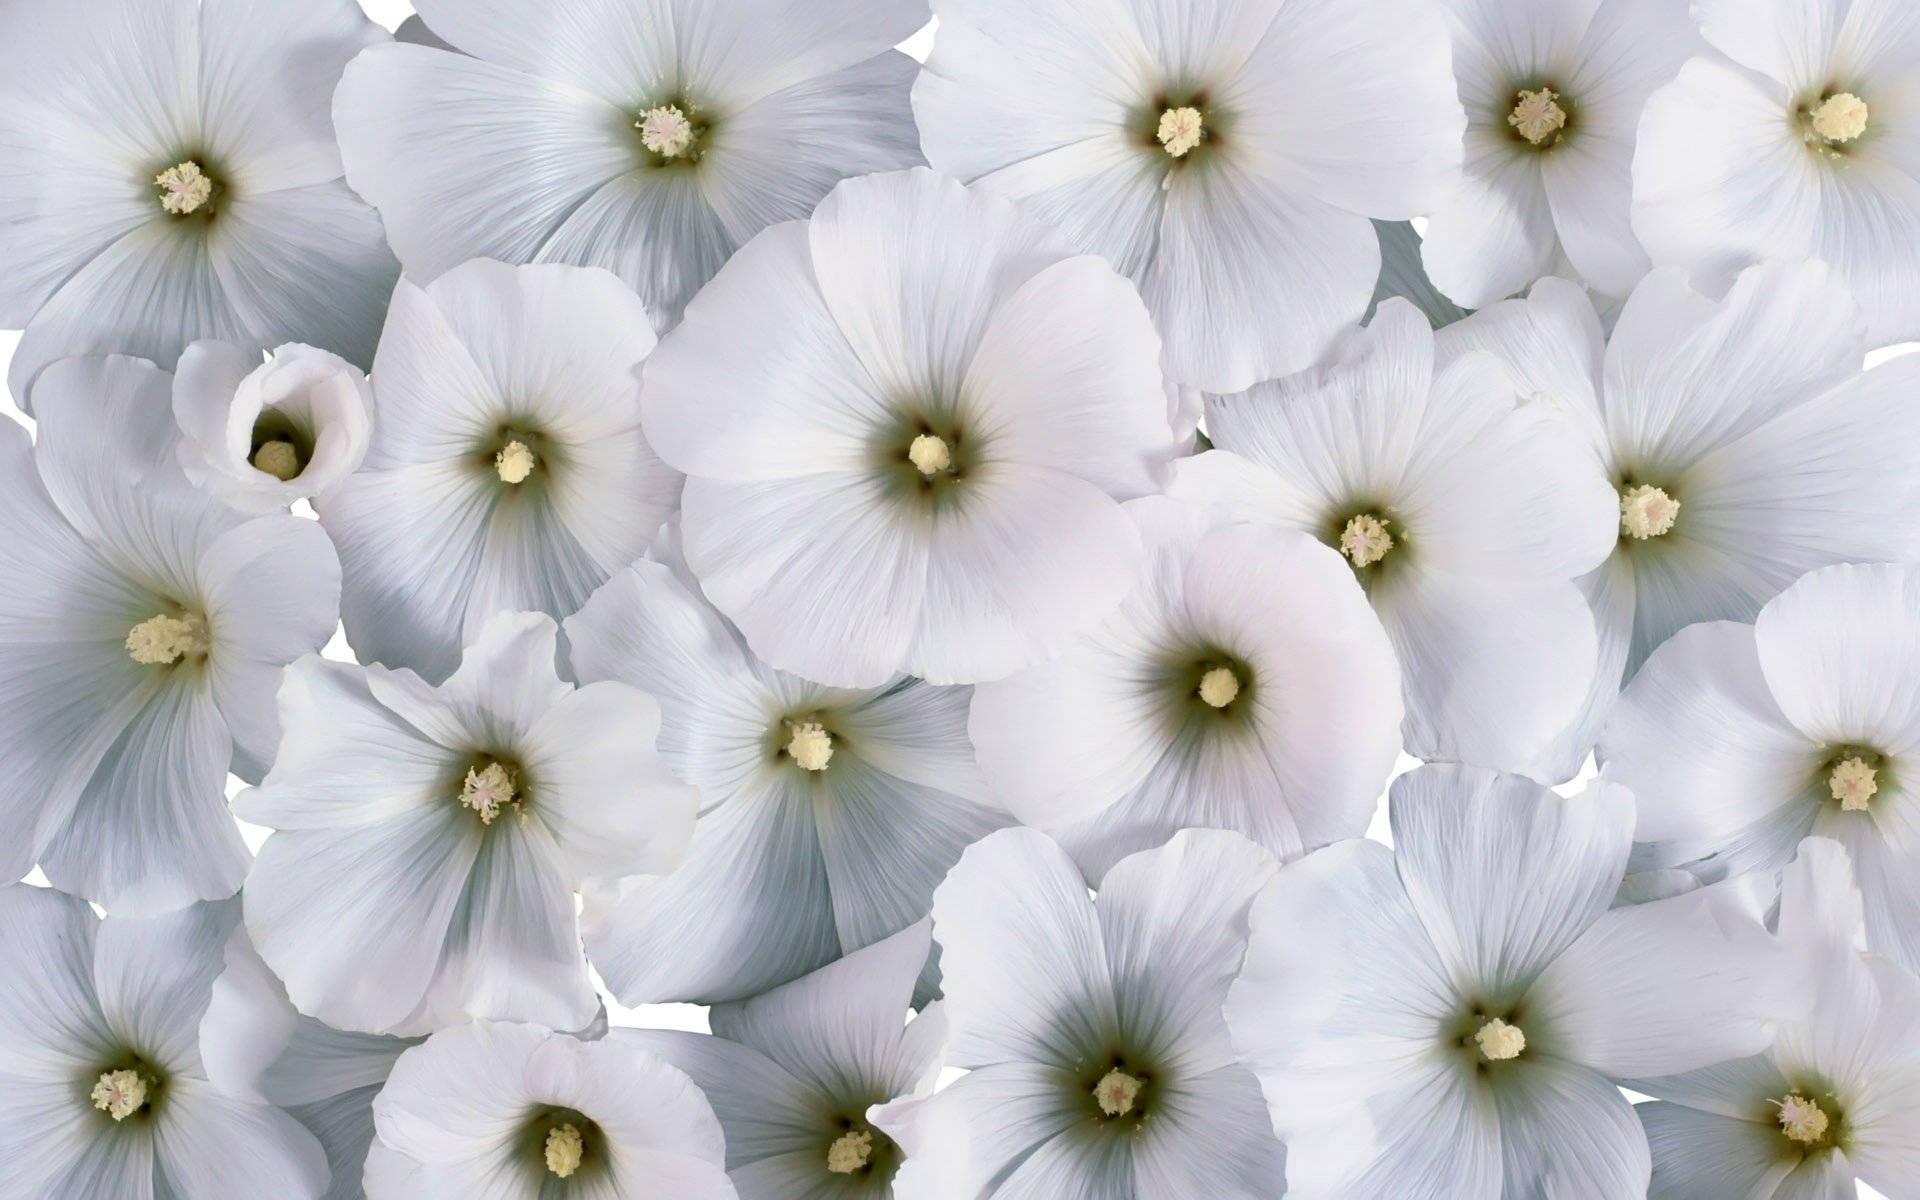 white flowers image  wallpaper hd, Natural flower